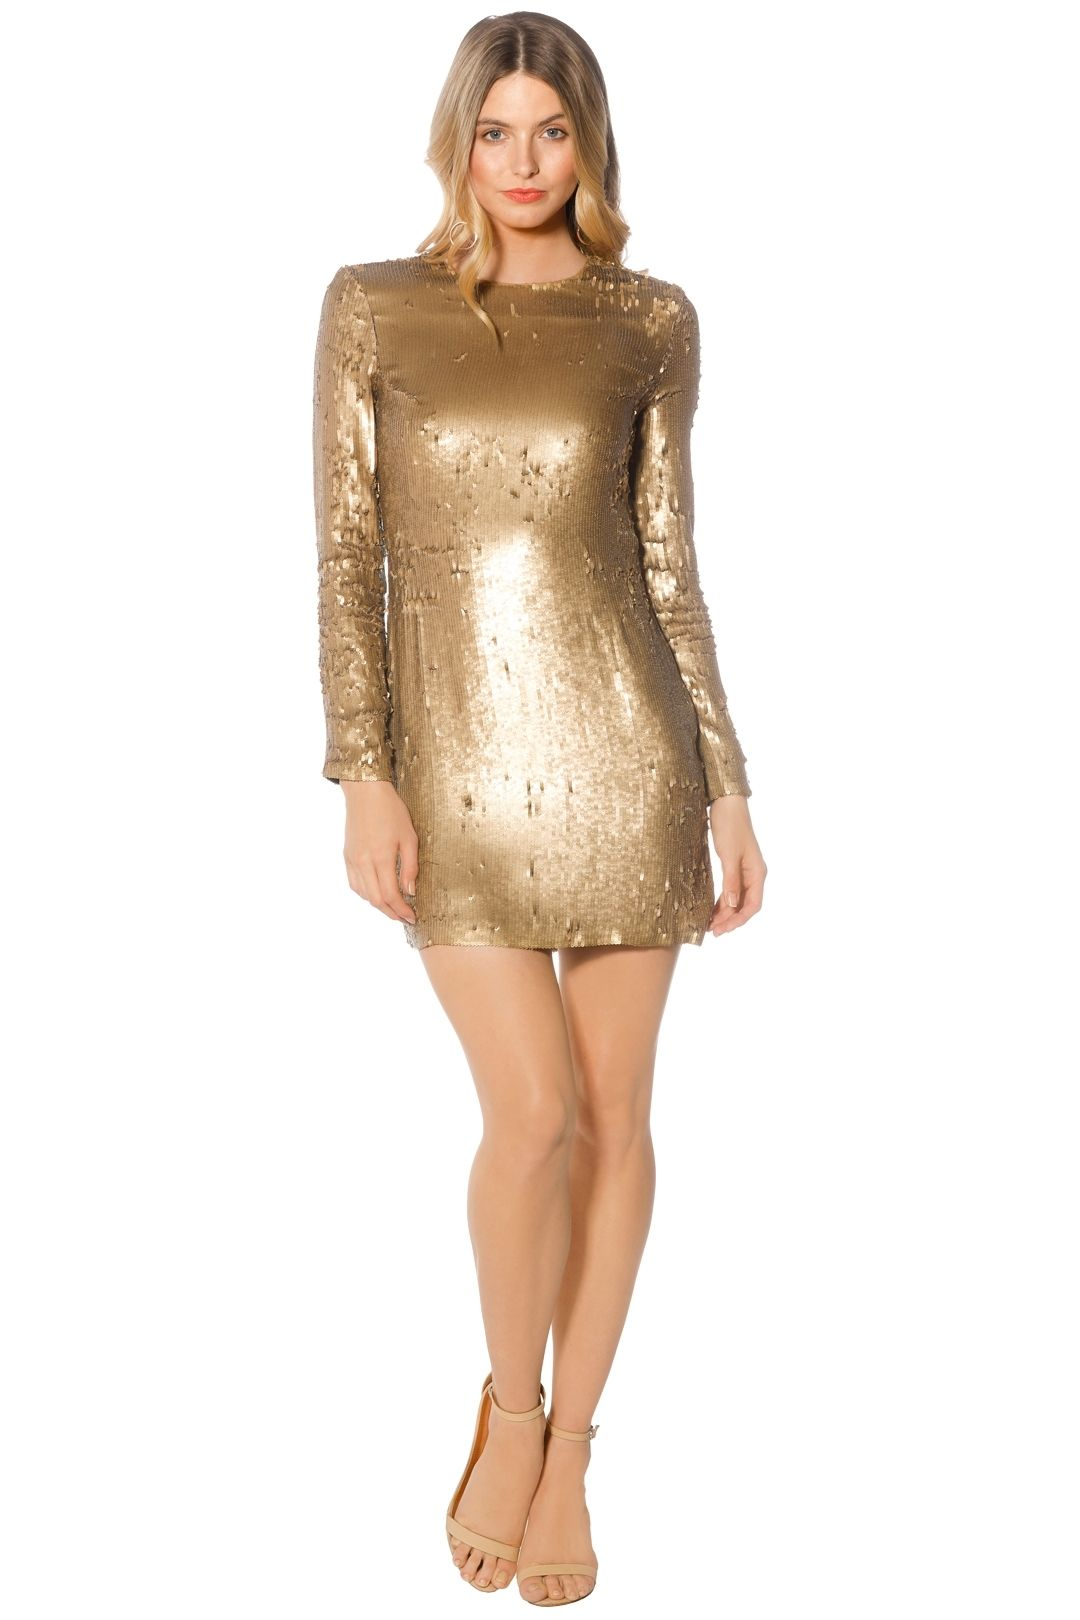 Diane Von Furstenberg - Pauletta Sequin Dress - Gold - Front